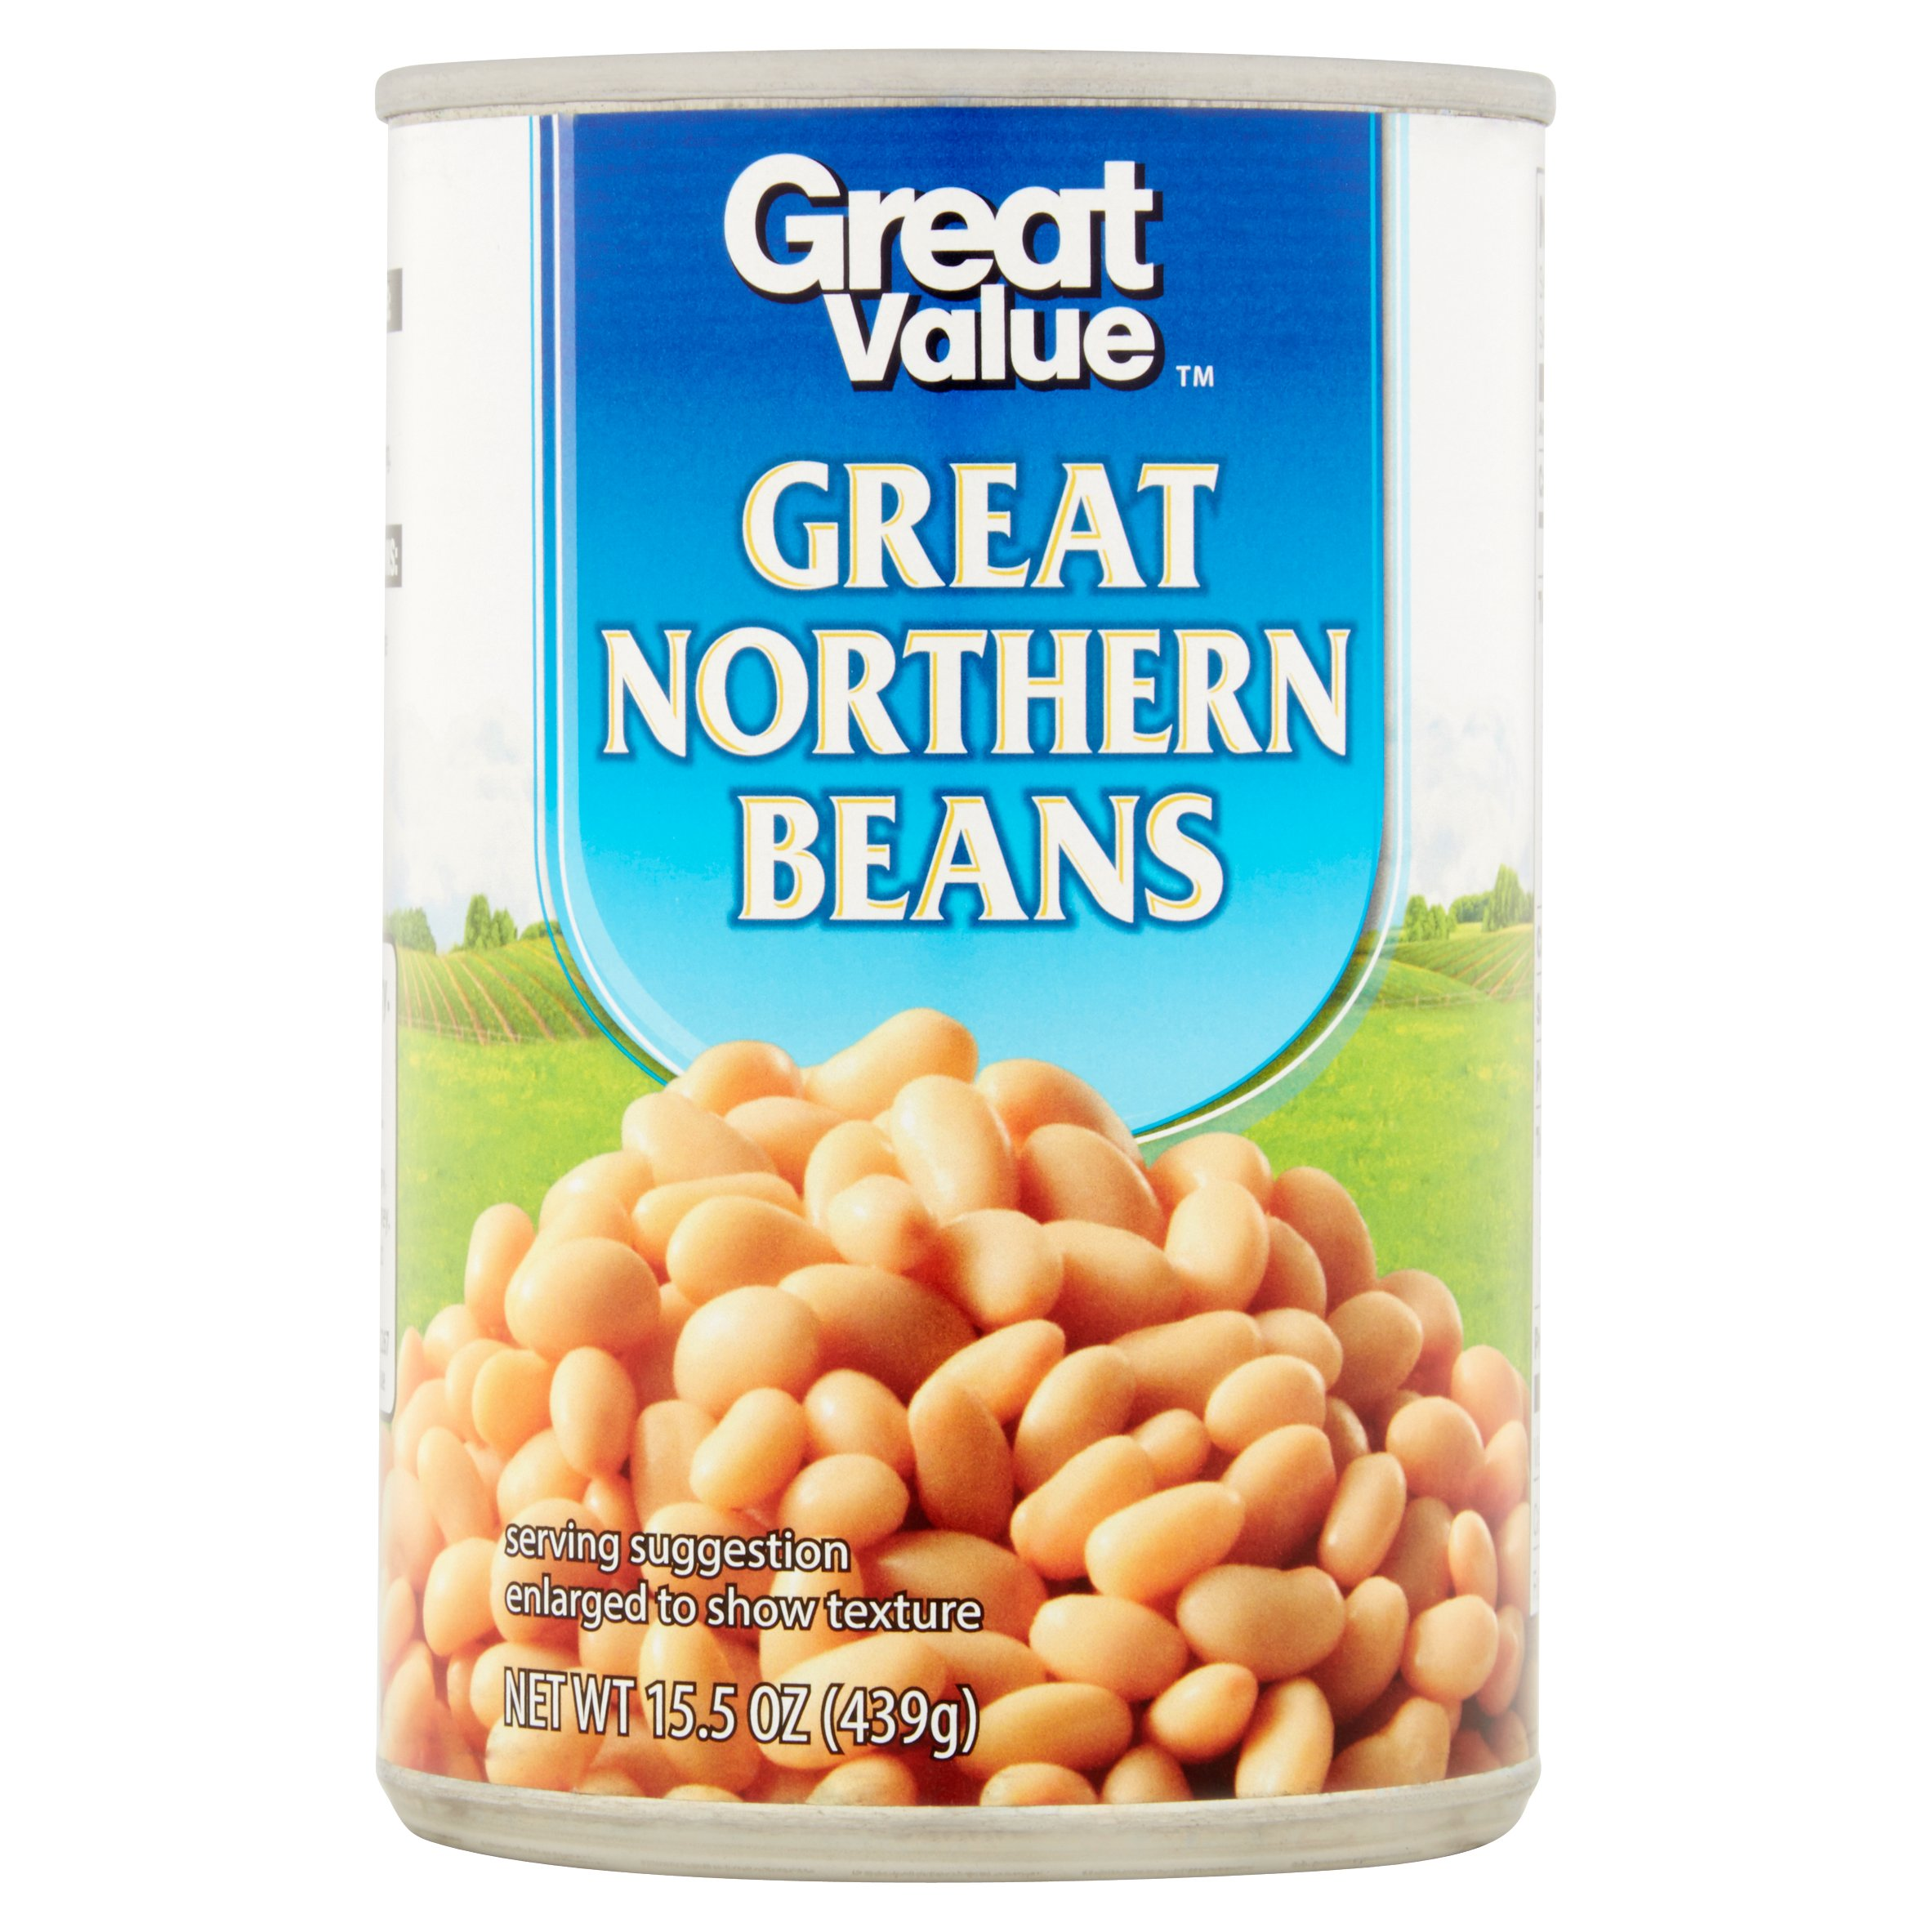 Great Value Great Northern Beans, 155 Oz  Walmartm. Roofing Contractors Grand Forks Nd. Continuing Care Retirement Communities Illinois. Transport Motorcycle In Truck. Keyword Tool For Website Datawatch Vs Tableau. Best Debt Relief Programs Art Schools In Utah. Arizona Insurance Agency Garage Doors Phoenix. United States Navy Officer Programs. Far Cost Accounting Standards